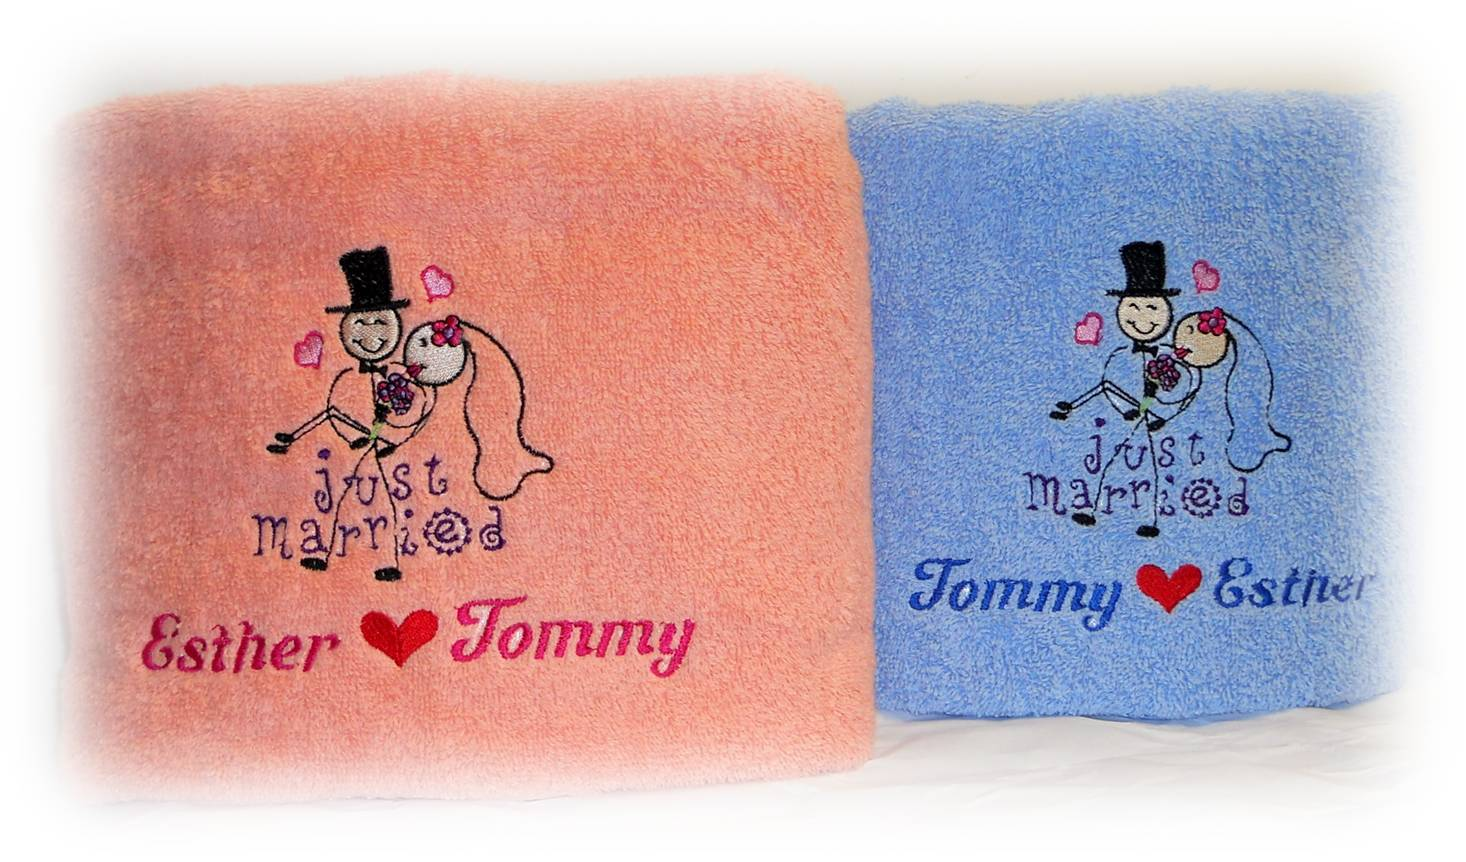 ... on customized gift ideas in Singapore: Wedding Towels with embroidery